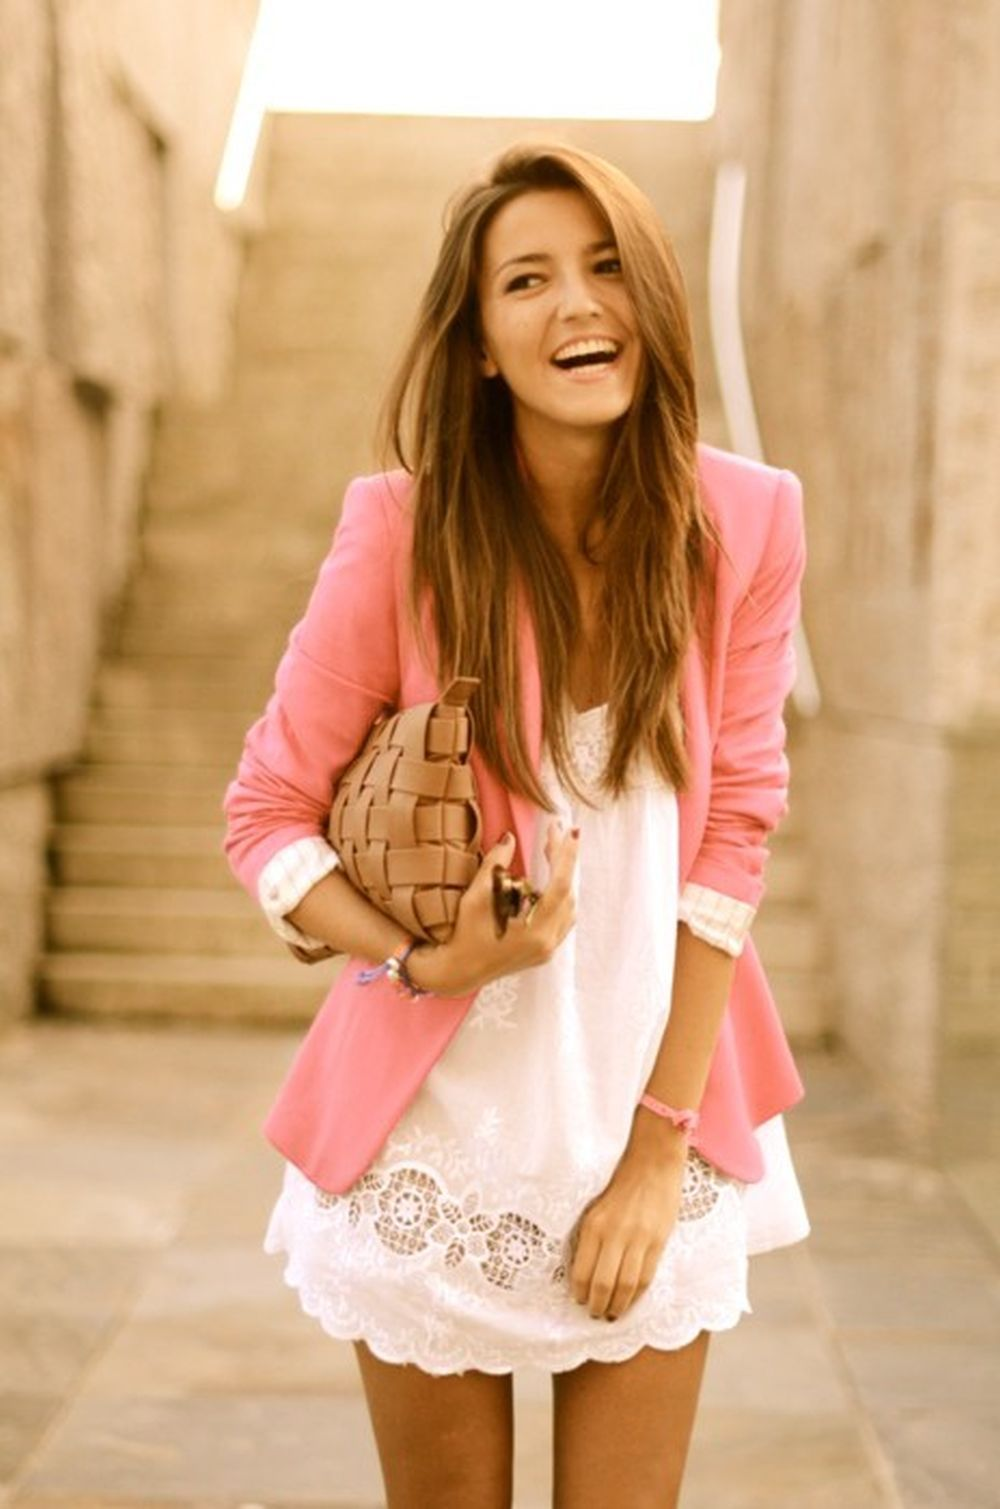 dresses for summer wedding a girl at a spring or summer wedding wearing a lace dress and pink blazer